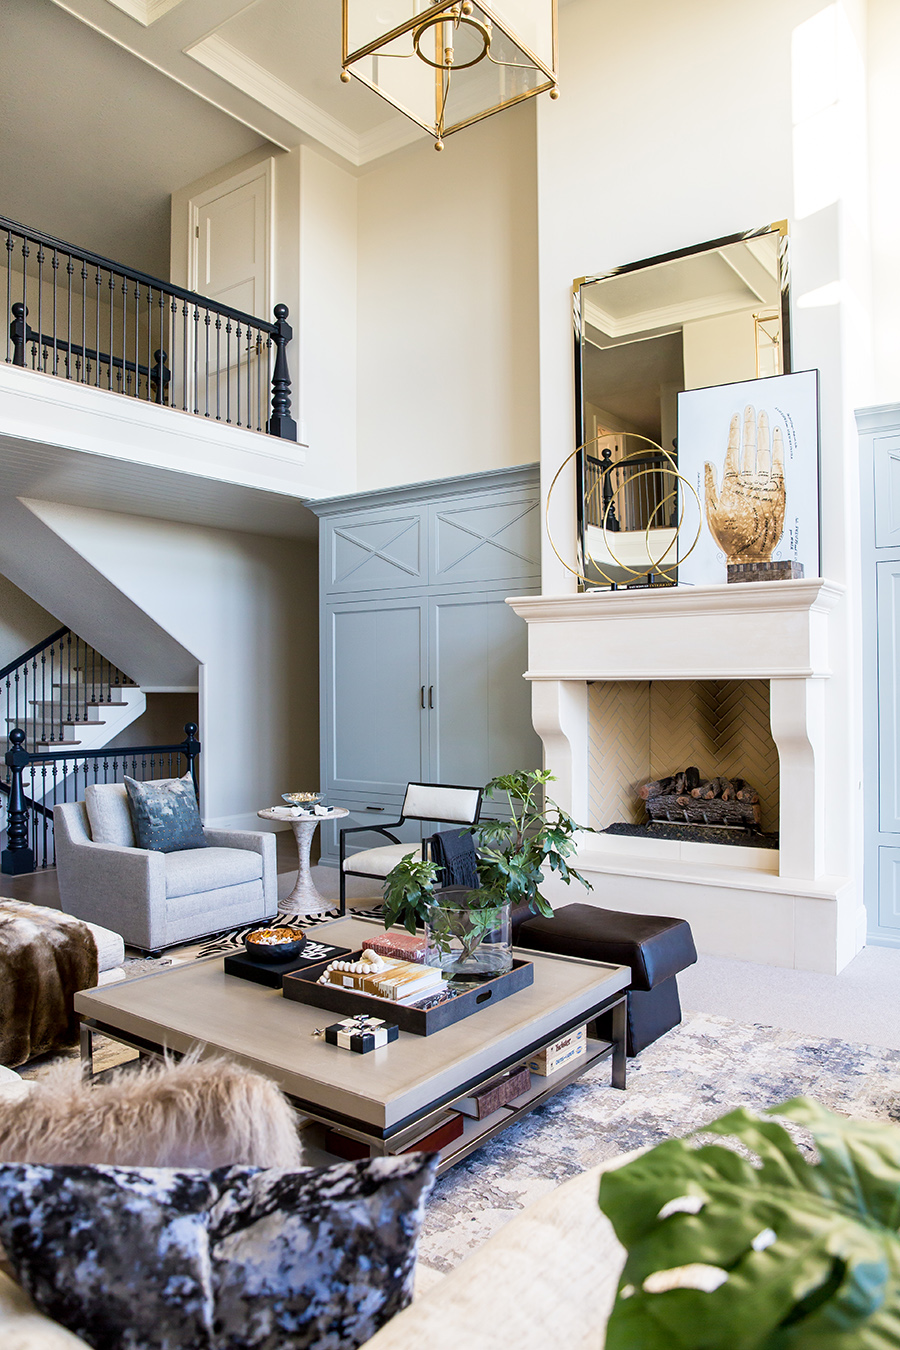 Styled Space Emily Jackson Of The Ivory Lanes Beautiful Utah Home